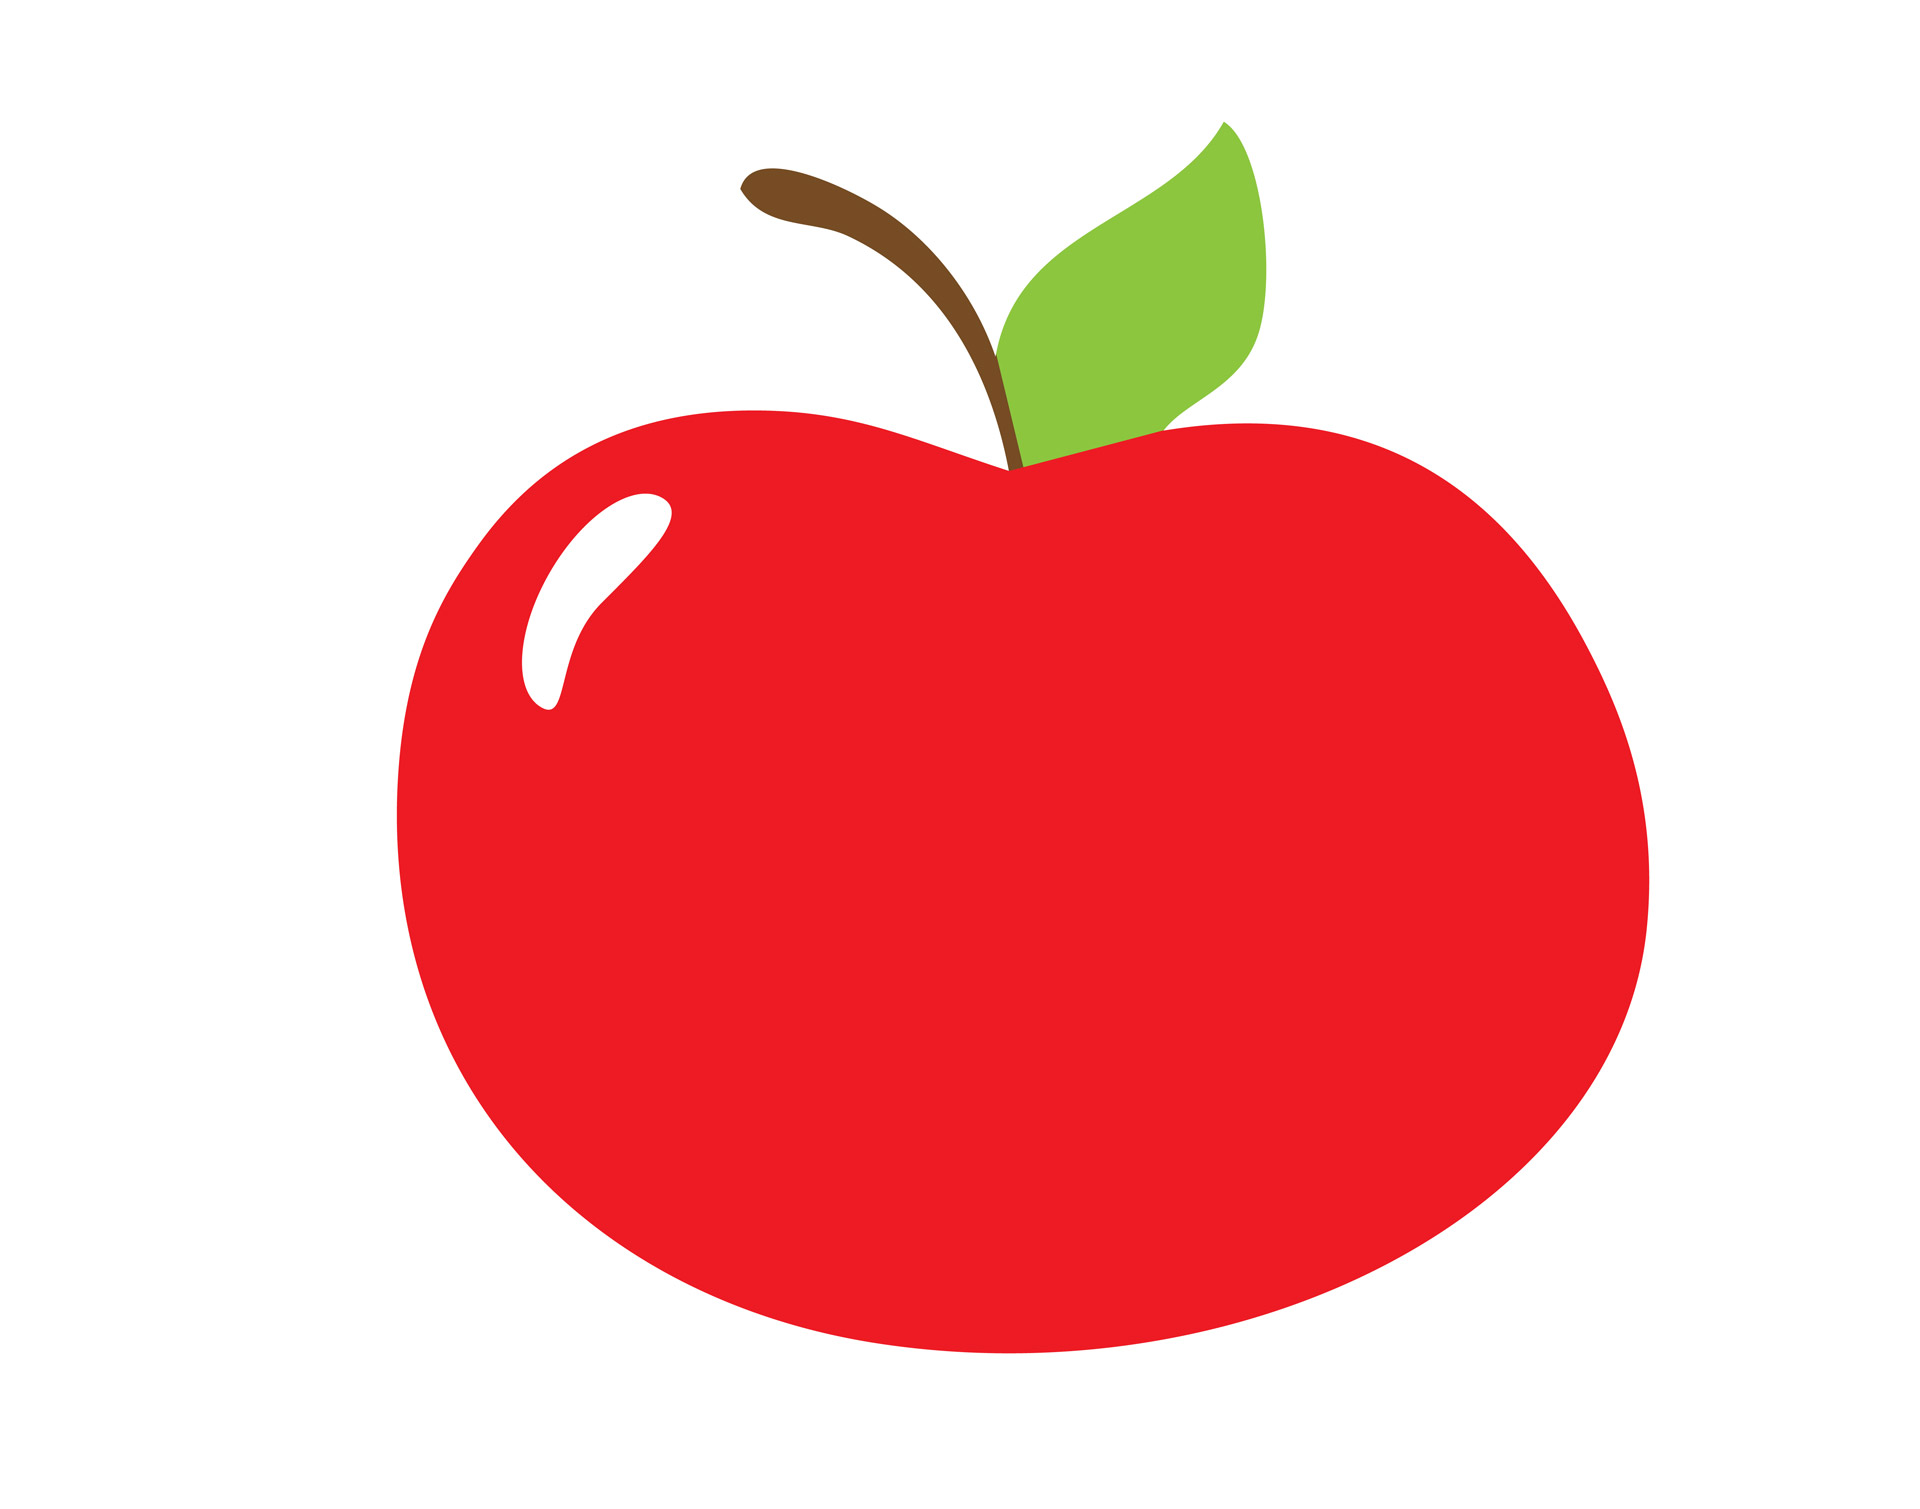 Apple clipart. Red free stock photo